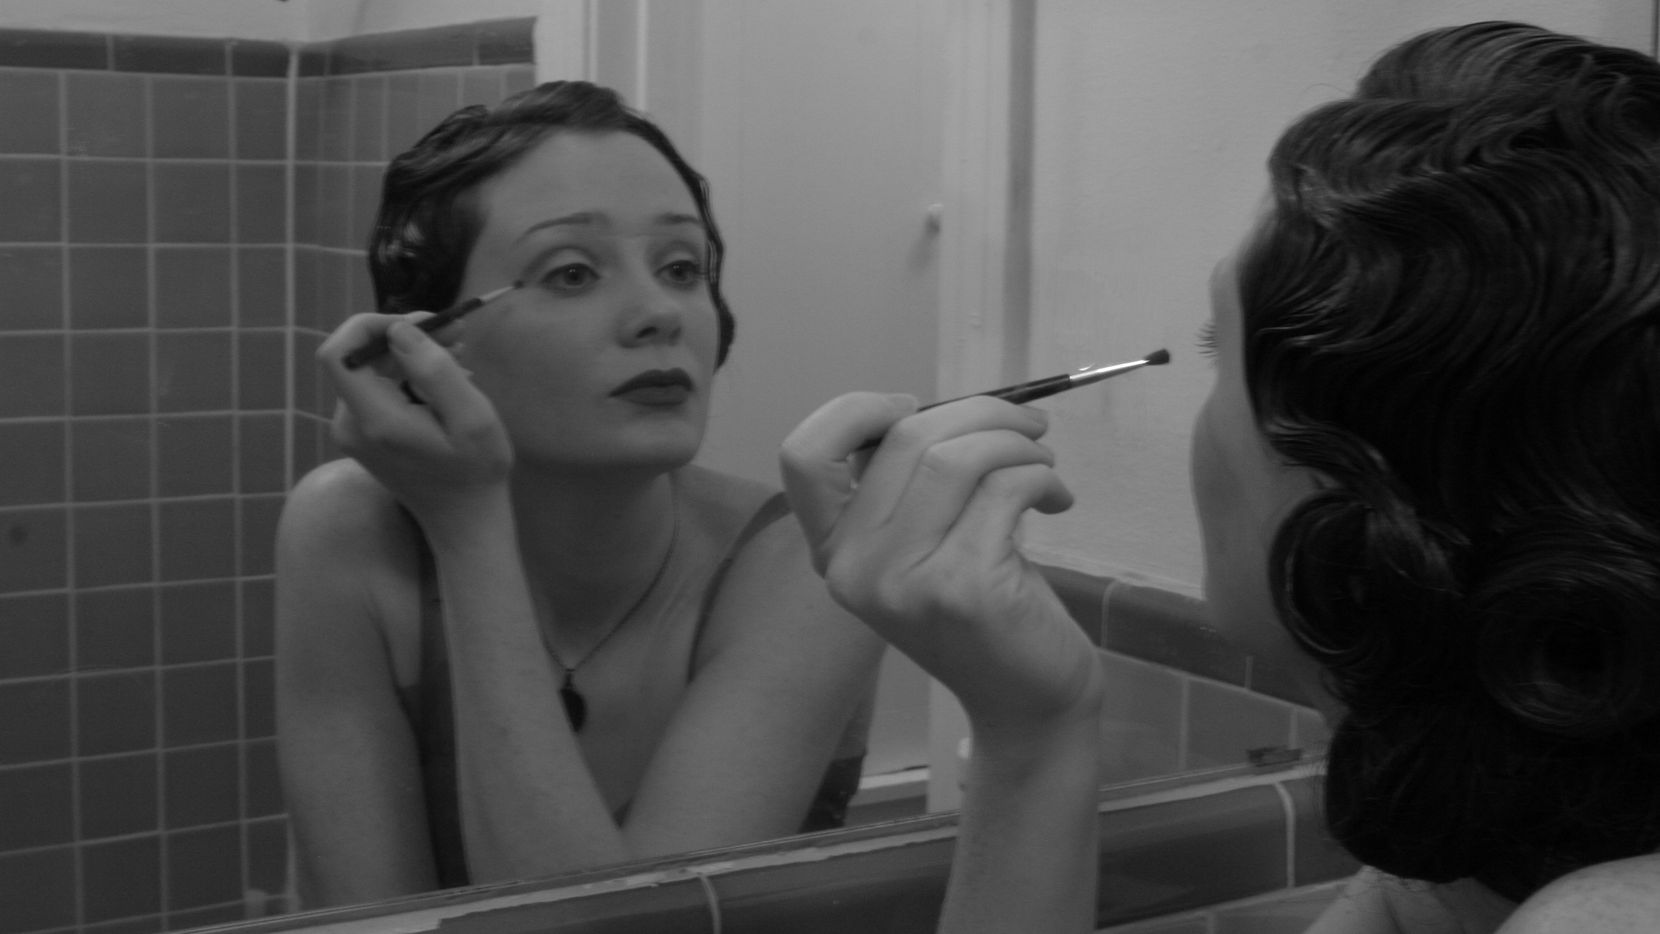 Singer-songwriter Kristy Kruger looks into the mirror while putting on makeup.